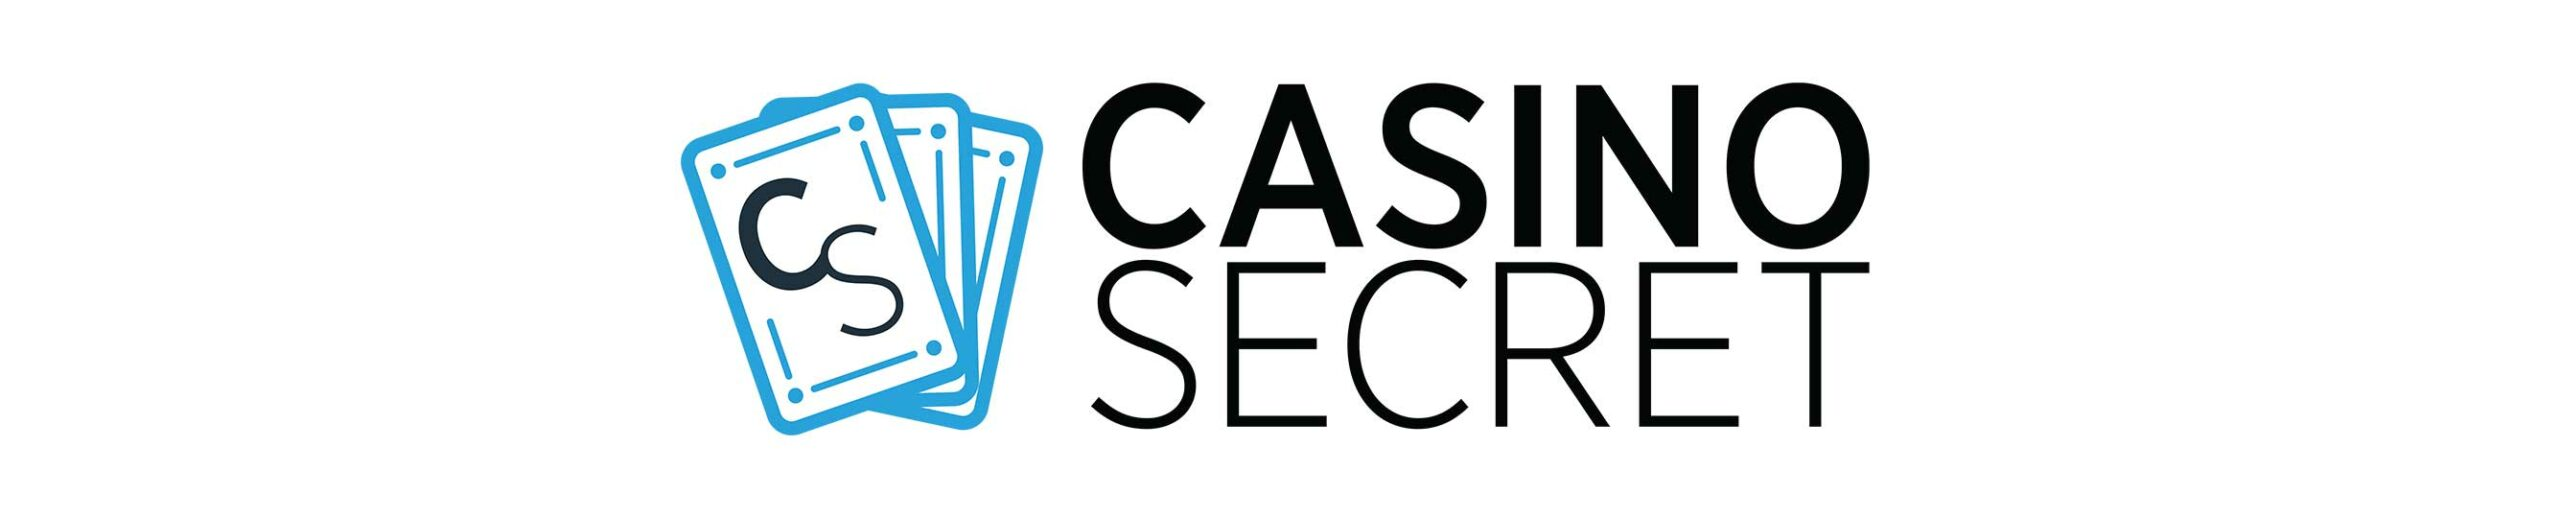 Casino-Secret-Featured-Image